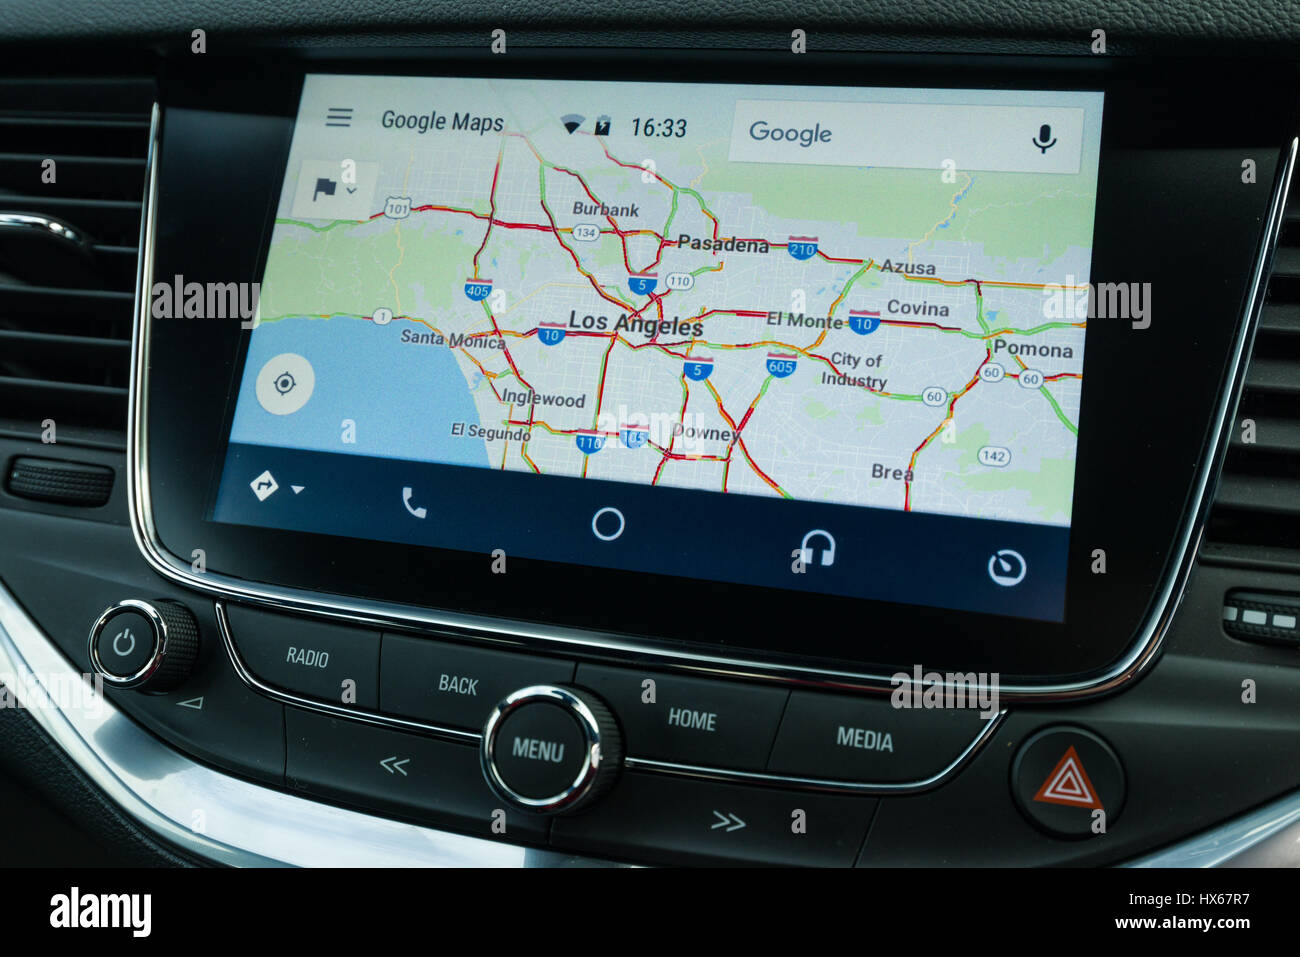 Android Auto Maps Navigation Car Vehicle Interface Showing Los - Los angeles navigation map